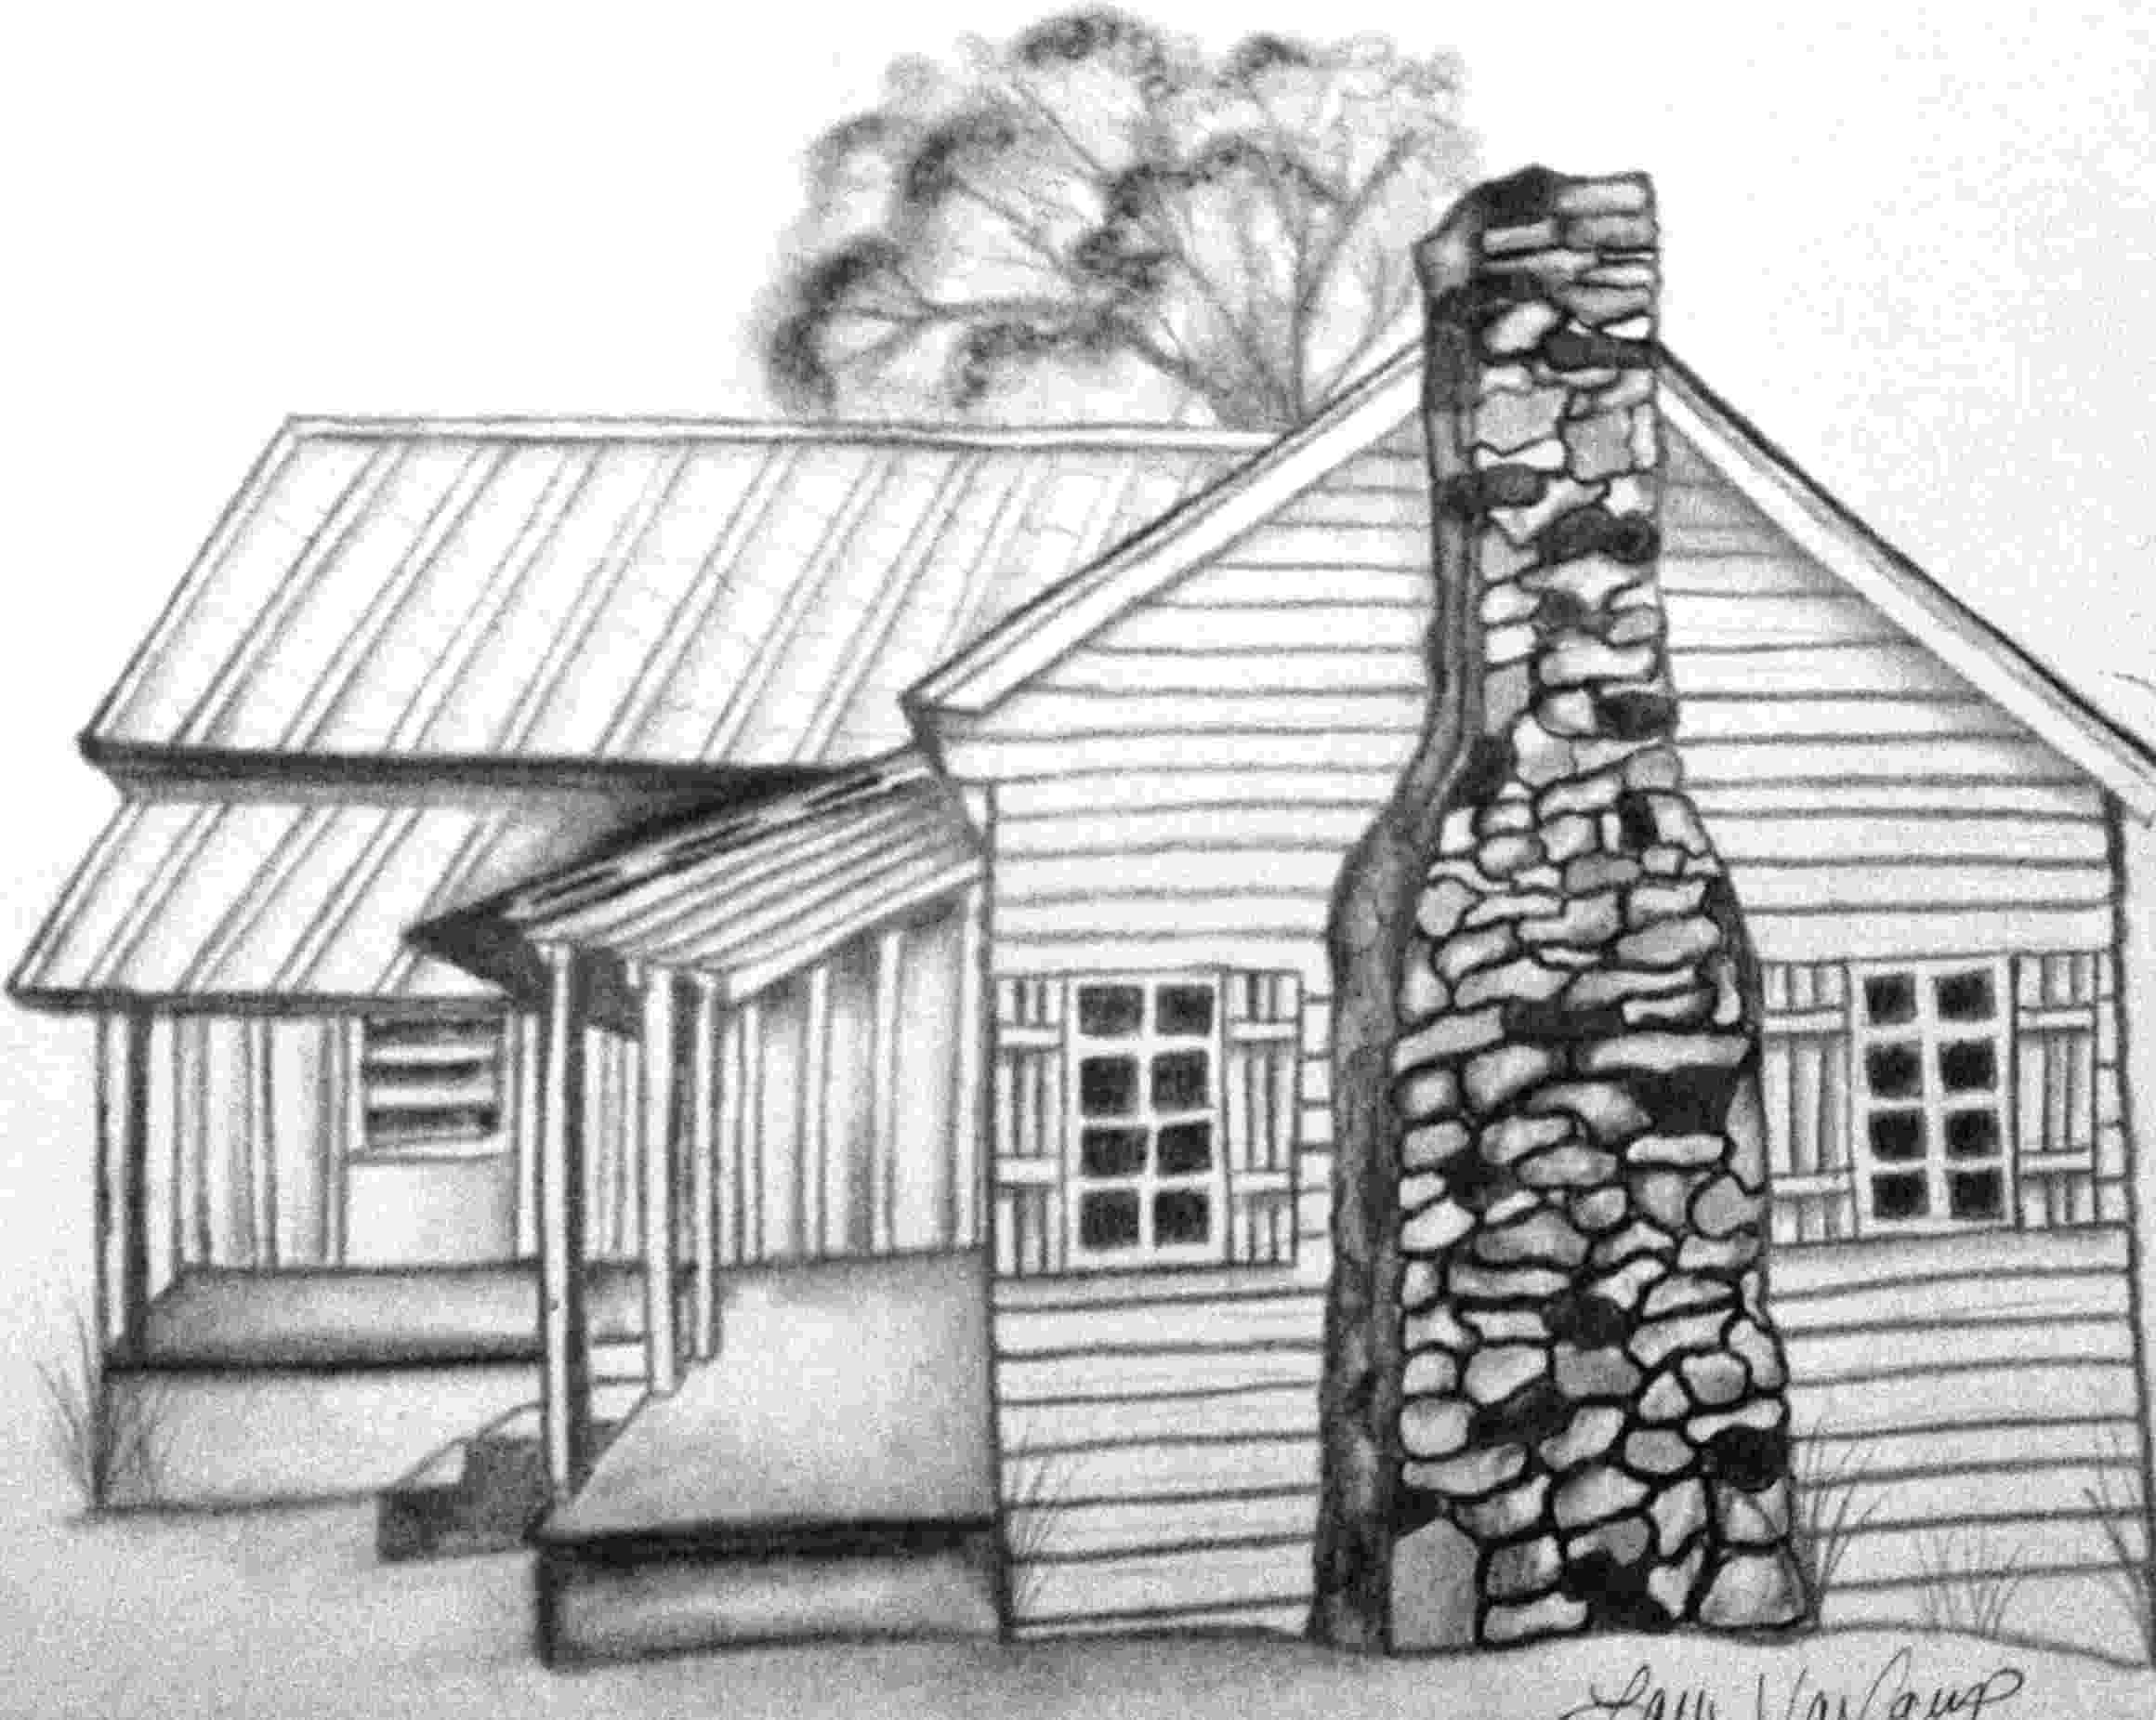 log cabin coloring page log house coloring pages coloring pages to download and page log cabin coloring